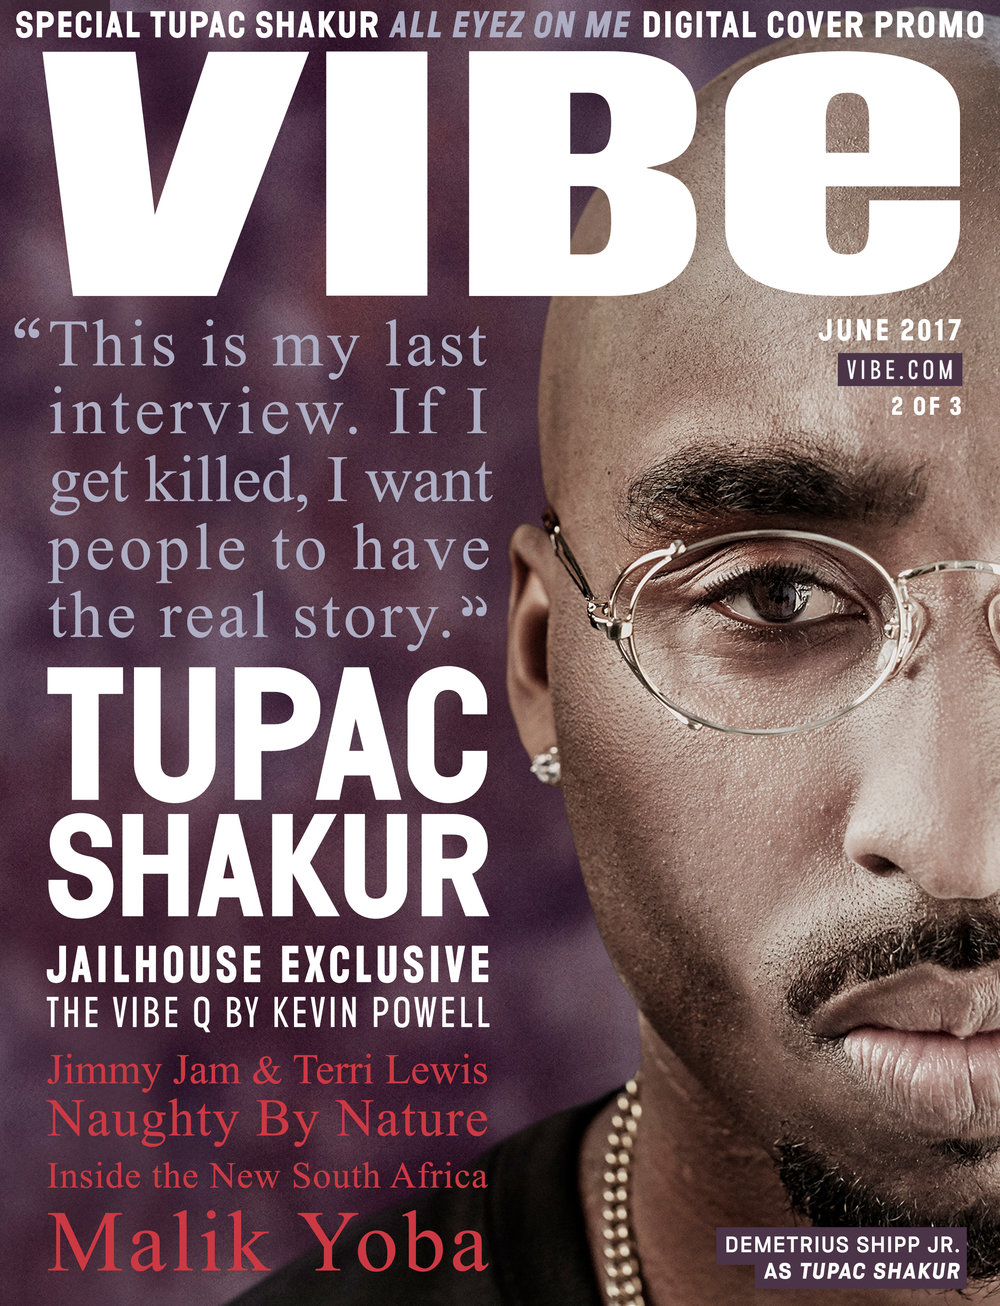 VIBE-CoverTupac_2of3[1].jpg